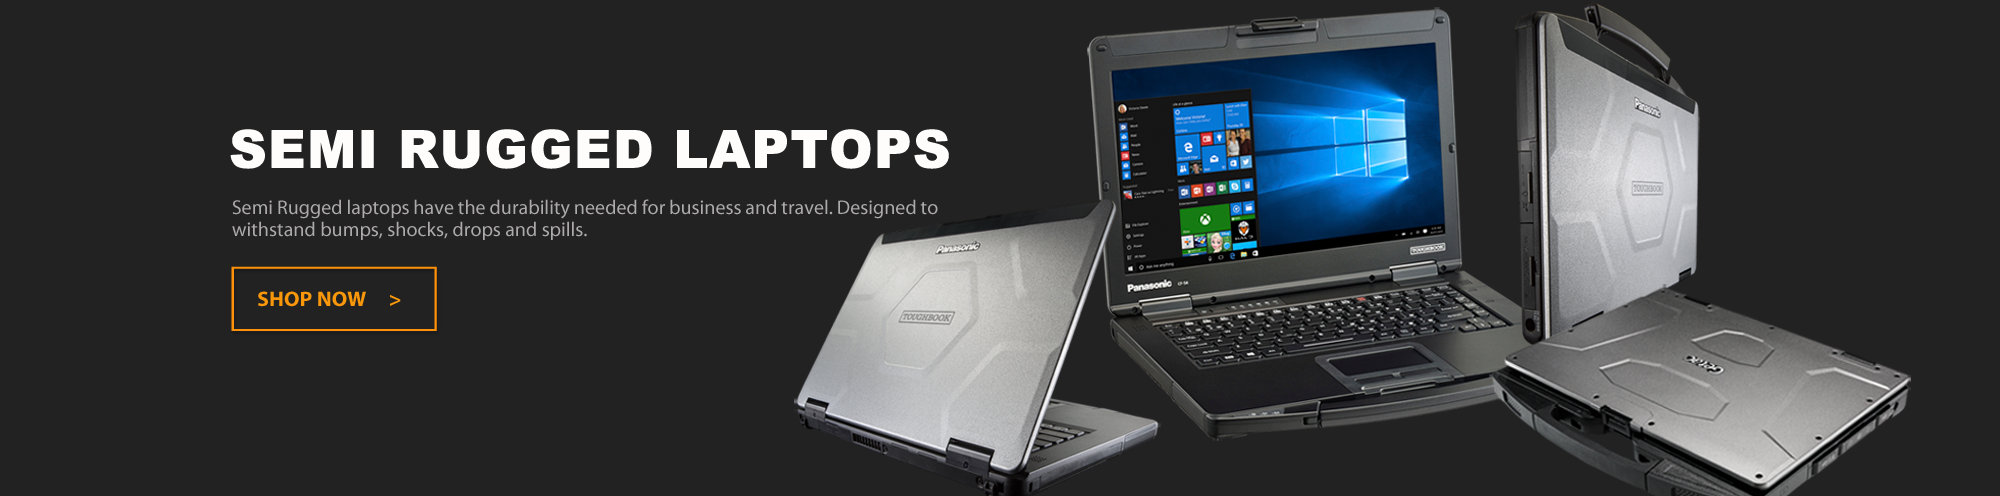 rugged laptops notebook shop astringo rug tilt extreme screen convertible latitude dell laptop